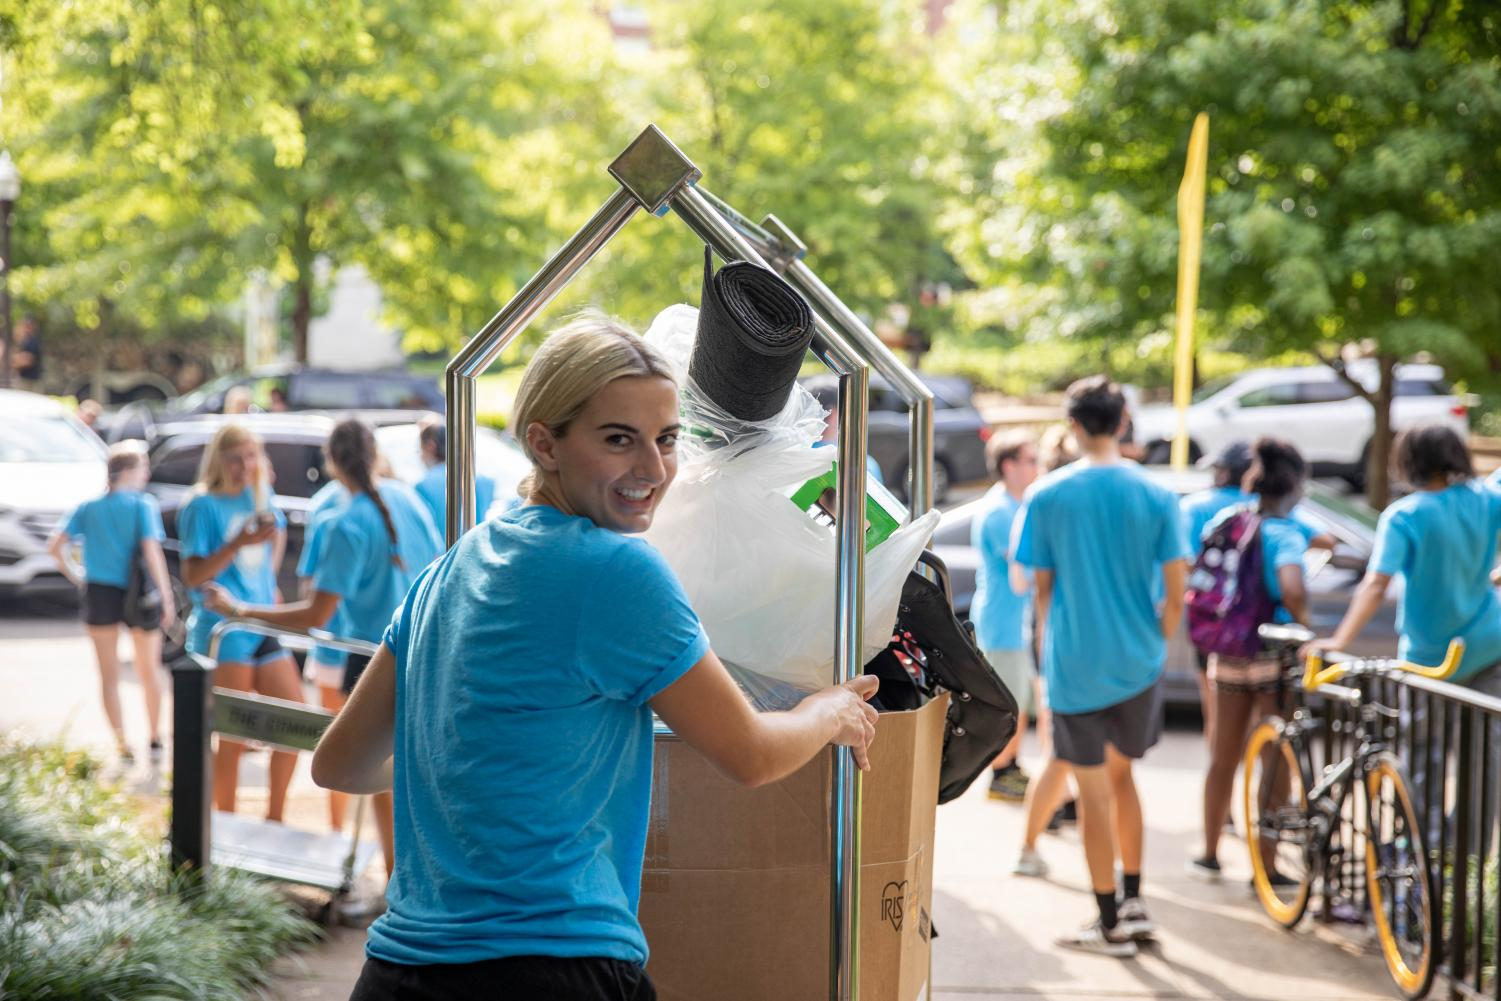 Student+volunteers+help+the+Vanderbilt+Class+of+2023+move+into+their+new+home+on+the+Ingram+Commons+on+Saturday%2C+August+17%2C+2019.+%28Photo+by+Emily+Gon%C3%A7alves%29